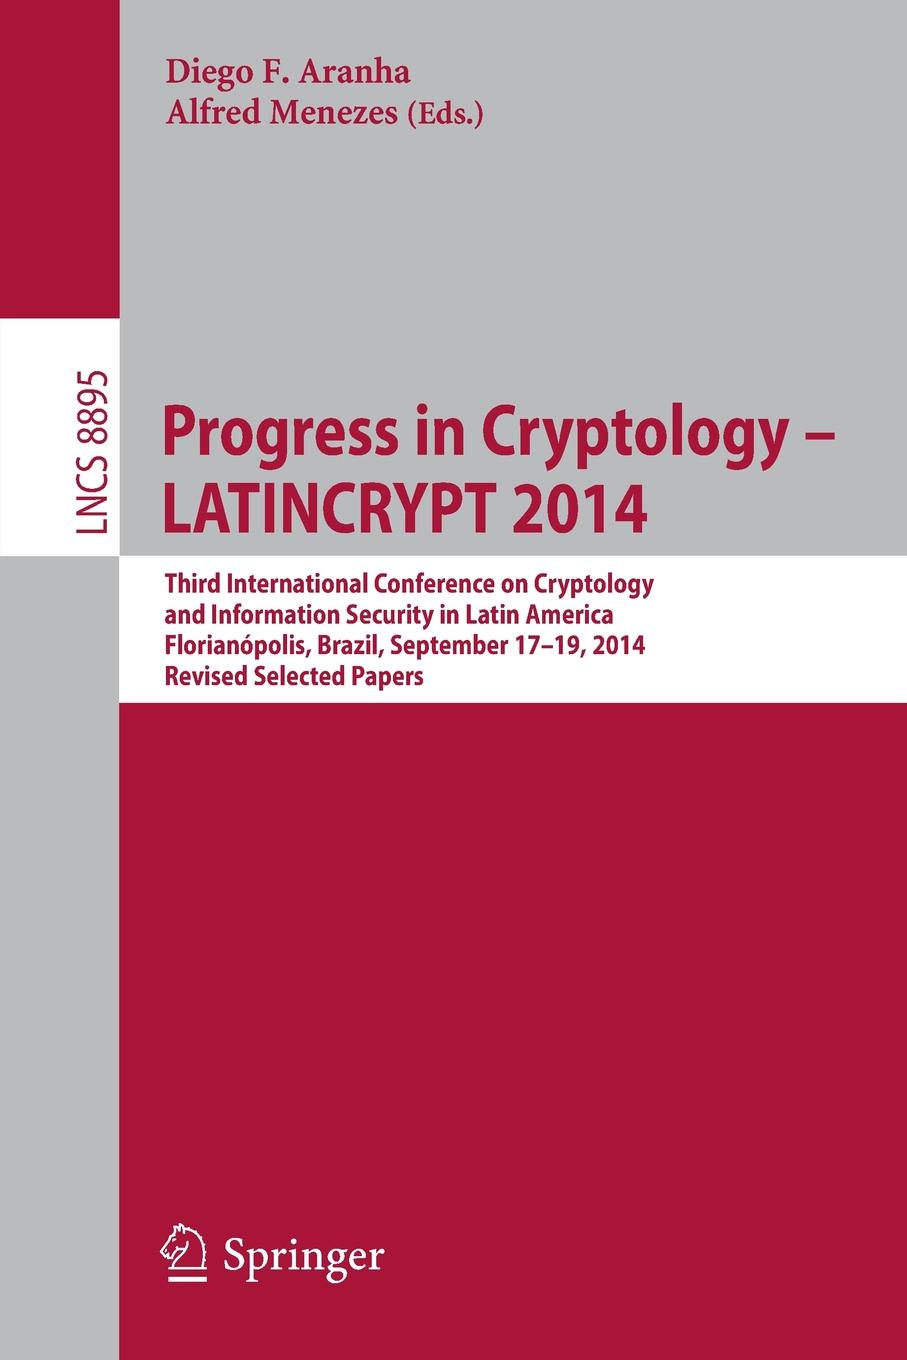 Progress in Cryptology - LATINCRYPT 2014. Third International Conference on Cryptology and Information Security in Latin America Florianopolis, Brazil, September 17-19, 2014 Revised Selected Papers cyber security and privacy third cyber security and privacy eu forum csp forum 2014 athens greece may 21 22 2014 revised selected papers